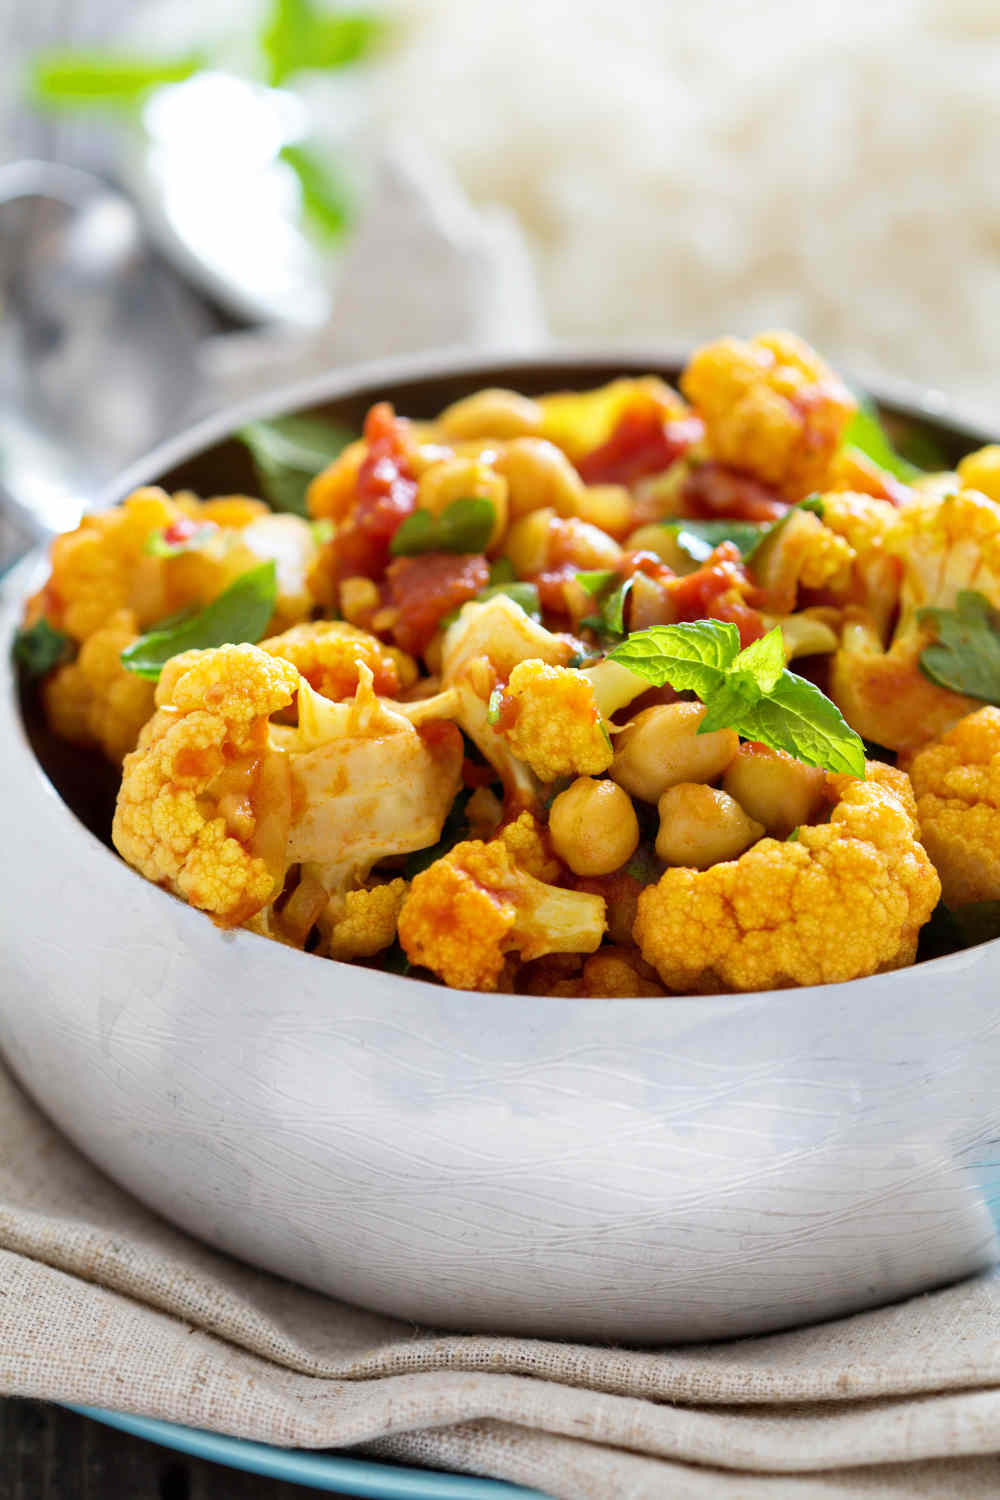 Bodytrim-Vegetarian-Cauliflower-Chickpea-Curry-Weight-loss-Recipe-Image